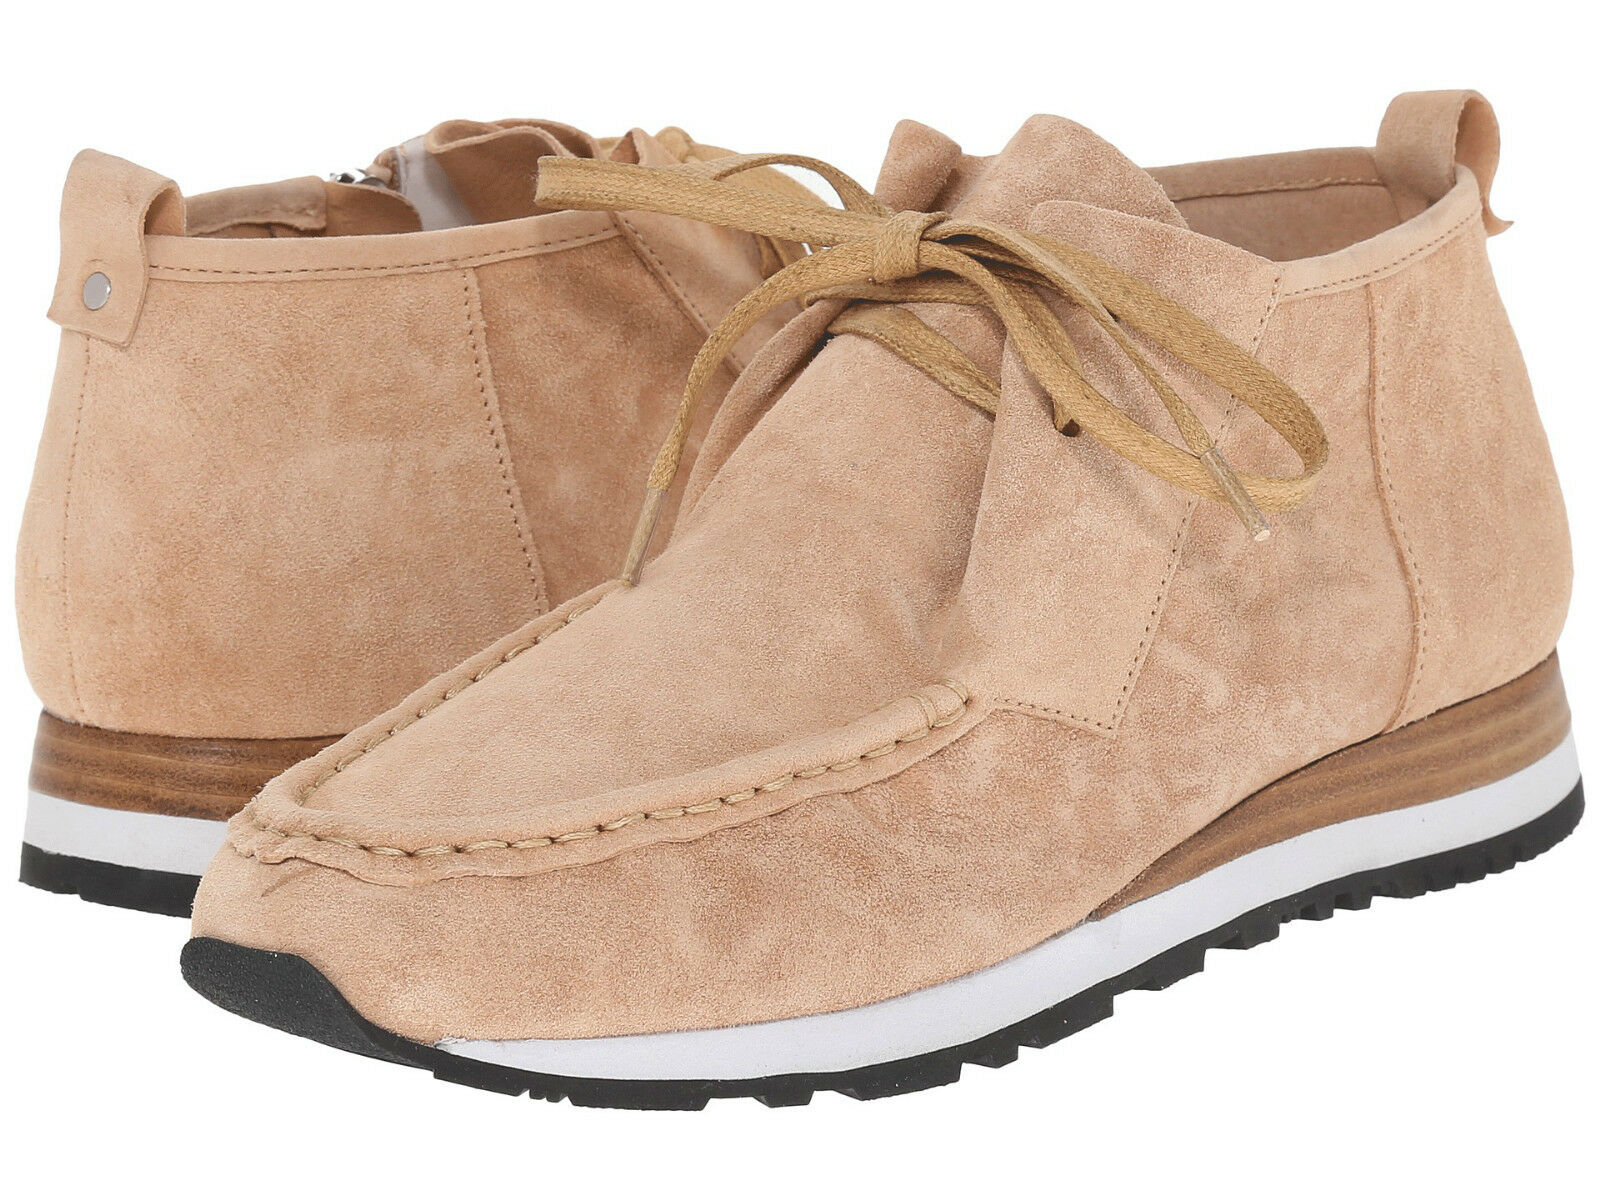 DEREK LAM 10 Crosby bleush Washed Washed Washed Suede JORDIE Zip chaussures ( 6 ) FREE SHIPPING 3720a4